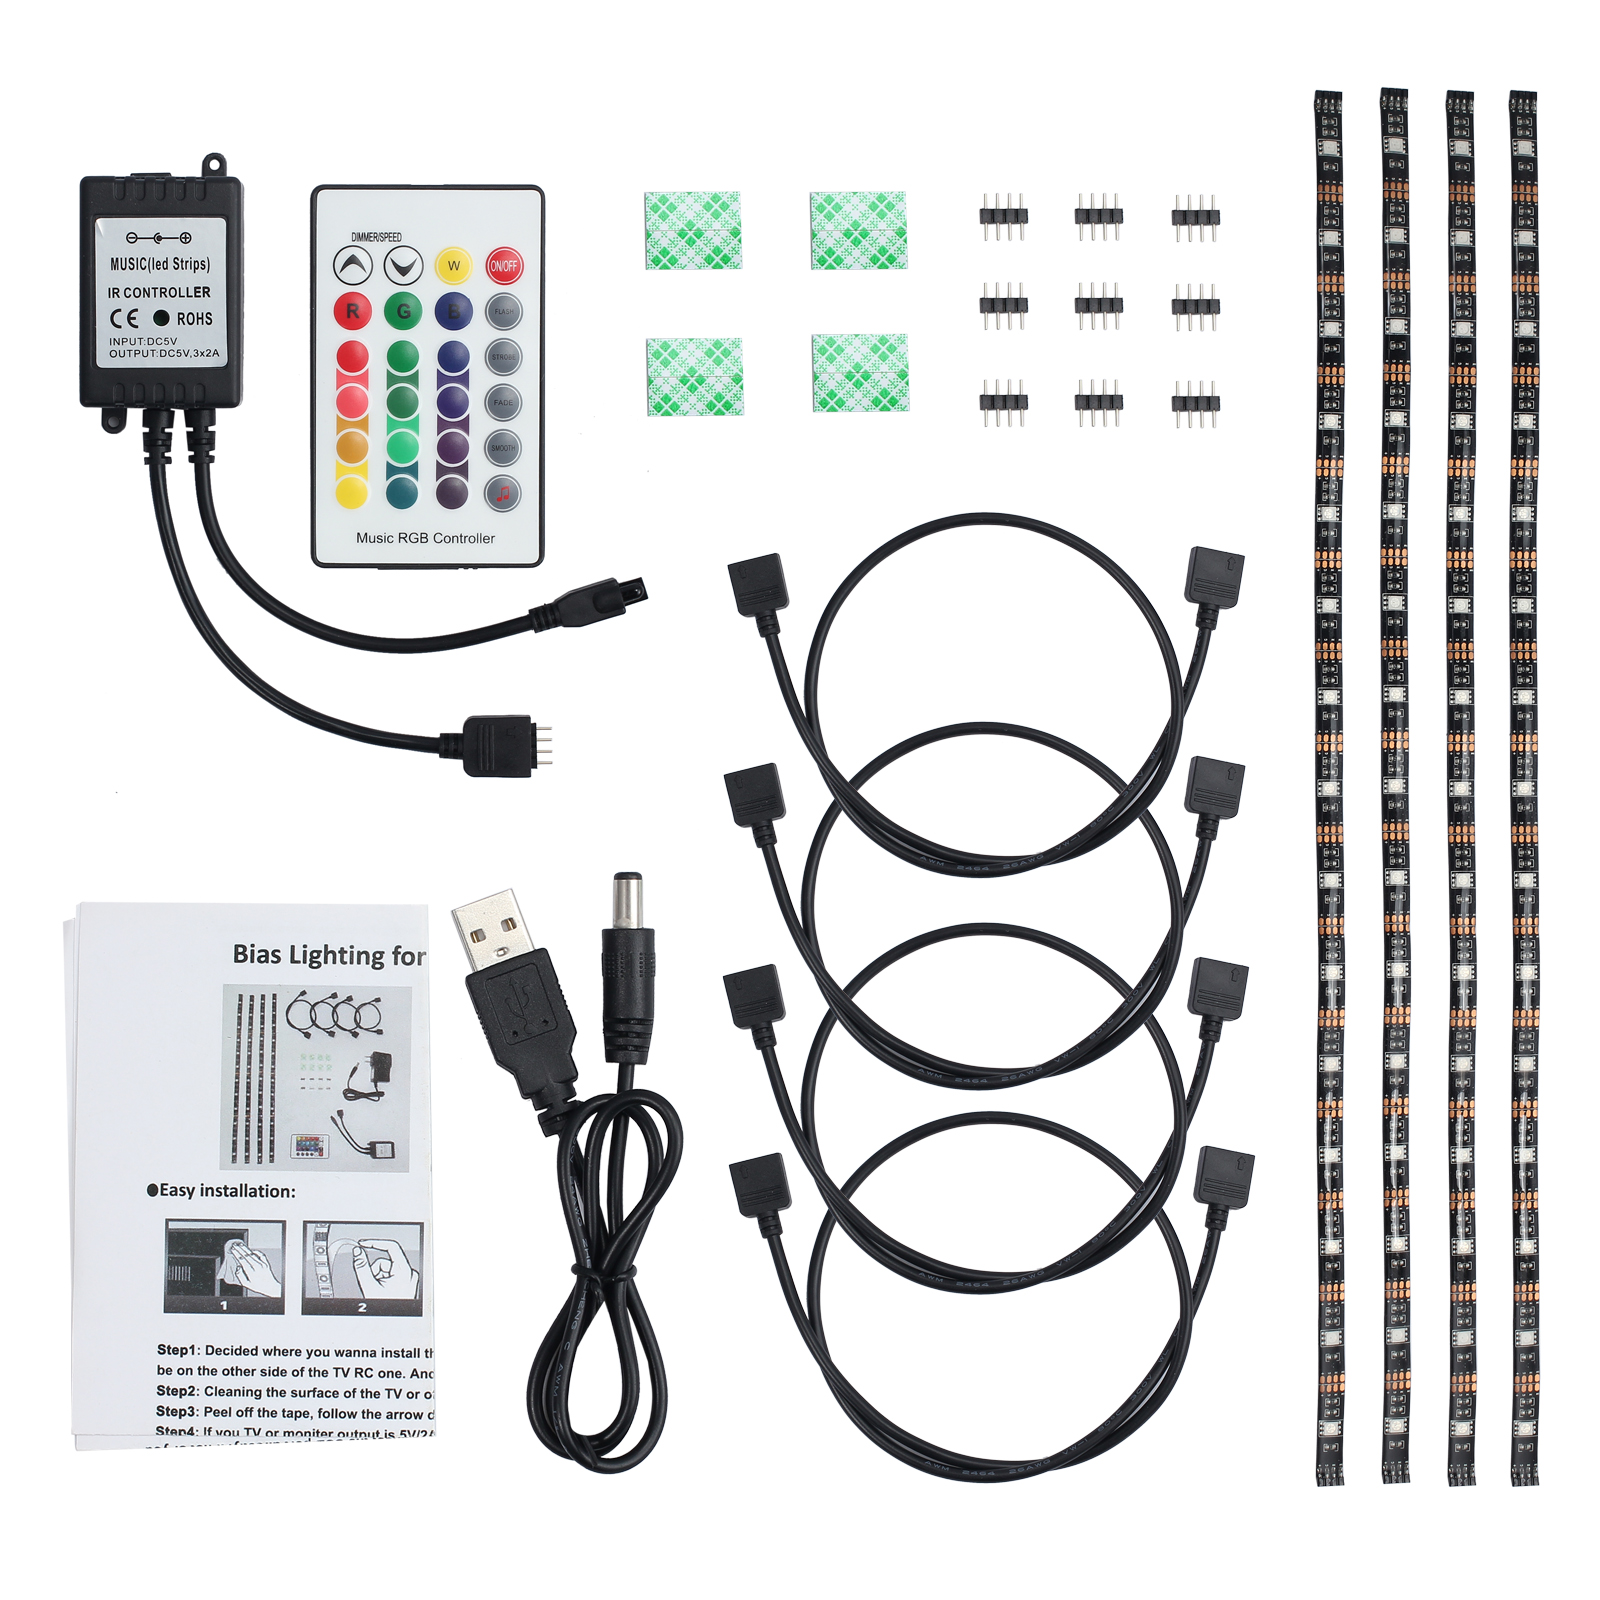 hight resolution of 4x 50cm led strip lights 4x led strip light cable 1x ir music remote receiver 1x remote control 1x usb power cable 1x stickers and other accessories